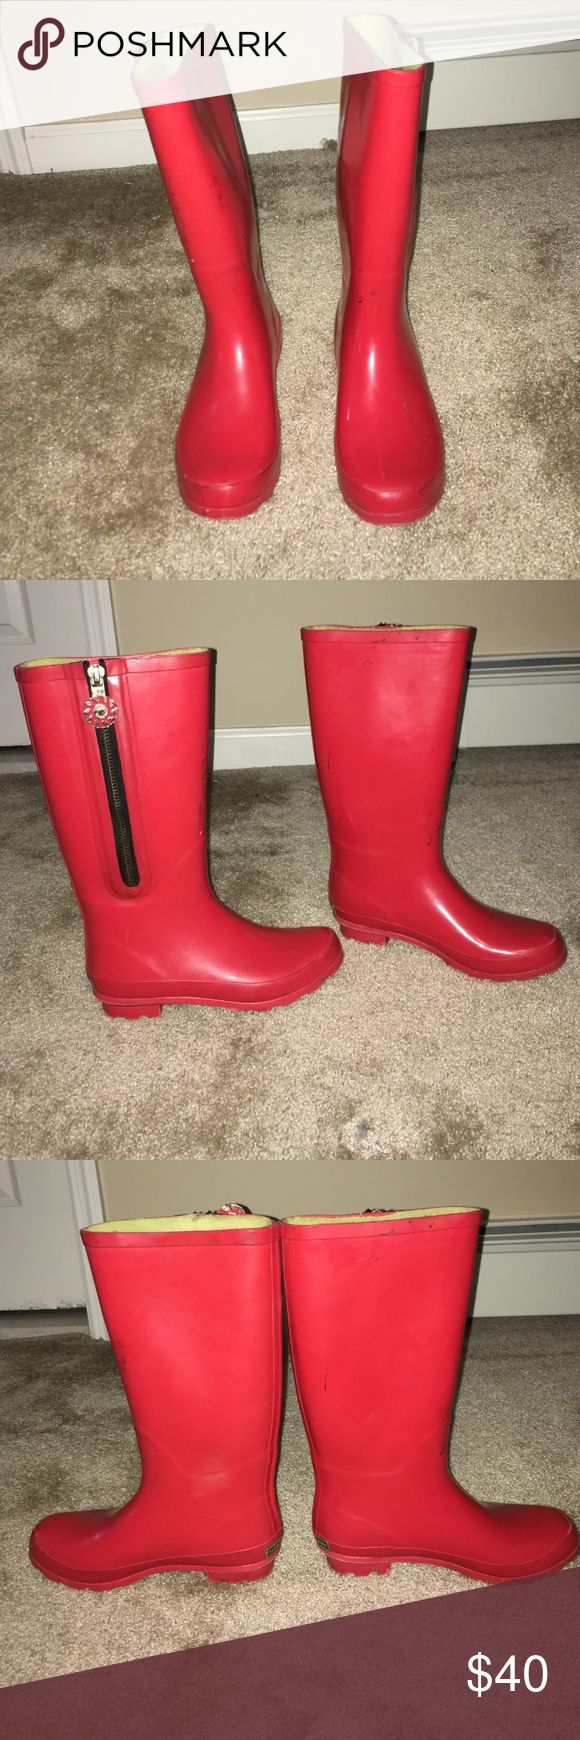 Jack Rogers Rainboots These Jack Rogers rainboots have been worn and do show some signs of wear in the photos. However still perfect for a rainy day! Jack Rogers Shoes Winter & Rain Boots